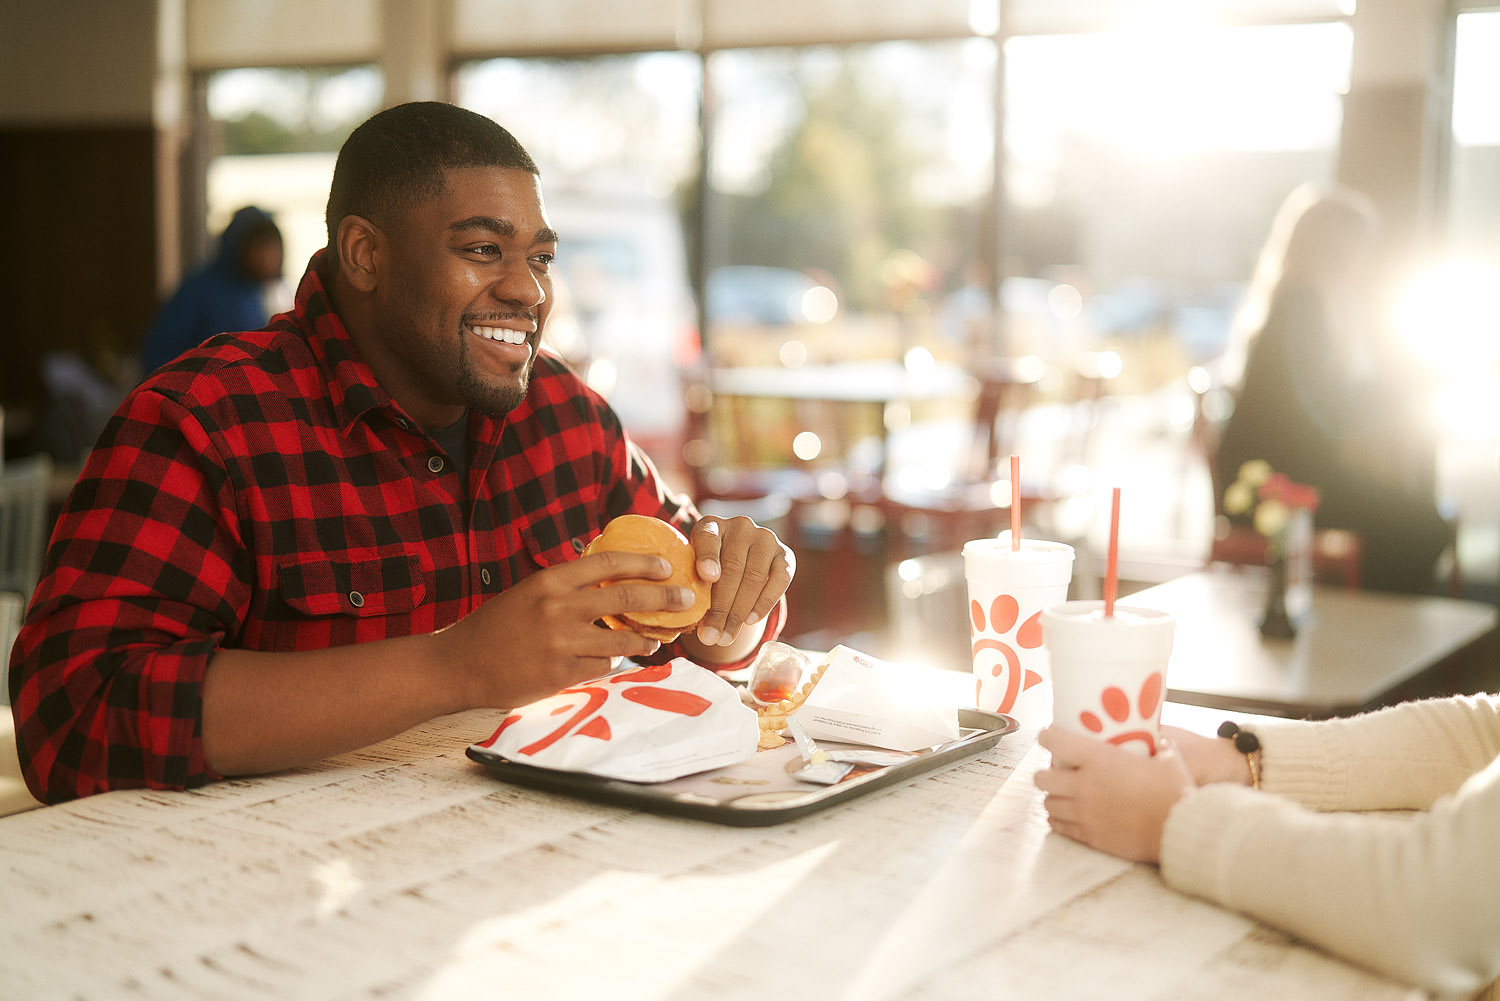 Hales Photo-Chic-fil-A-Brand Apart atlanta commercial advertising campaign photography studio and production house